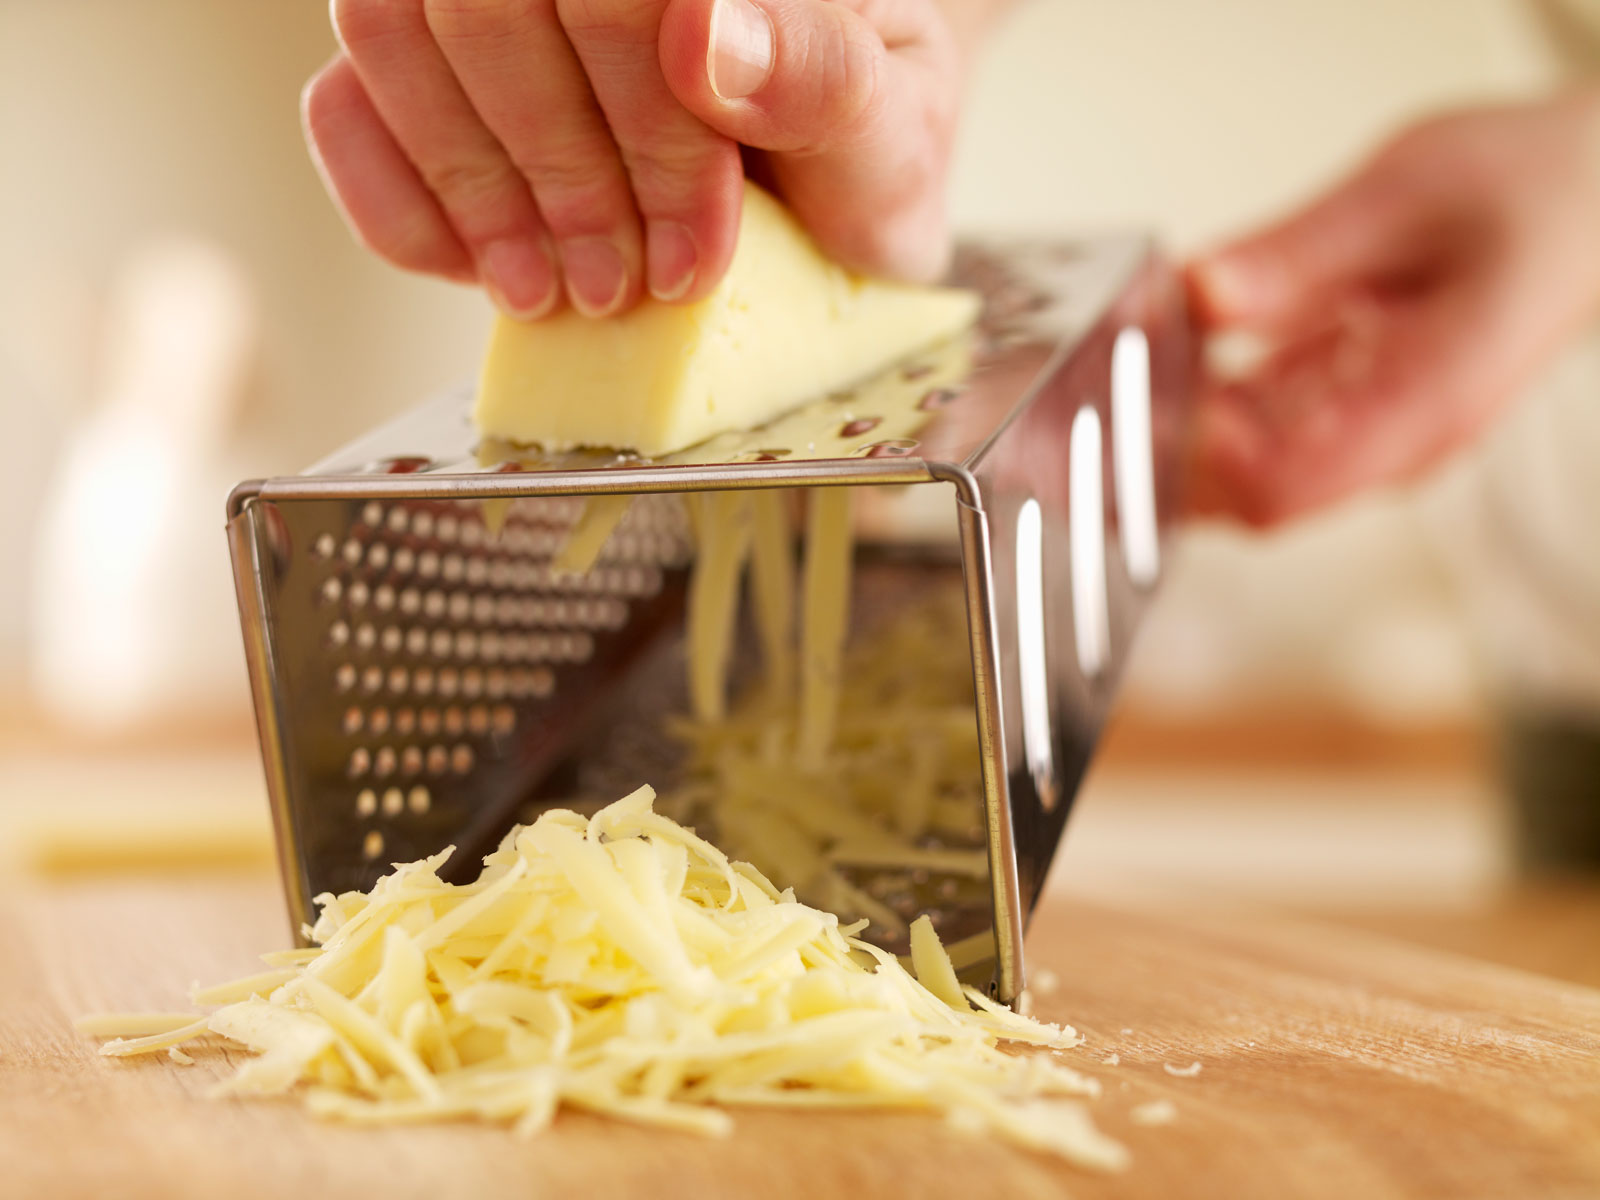 shredded cheese with grater